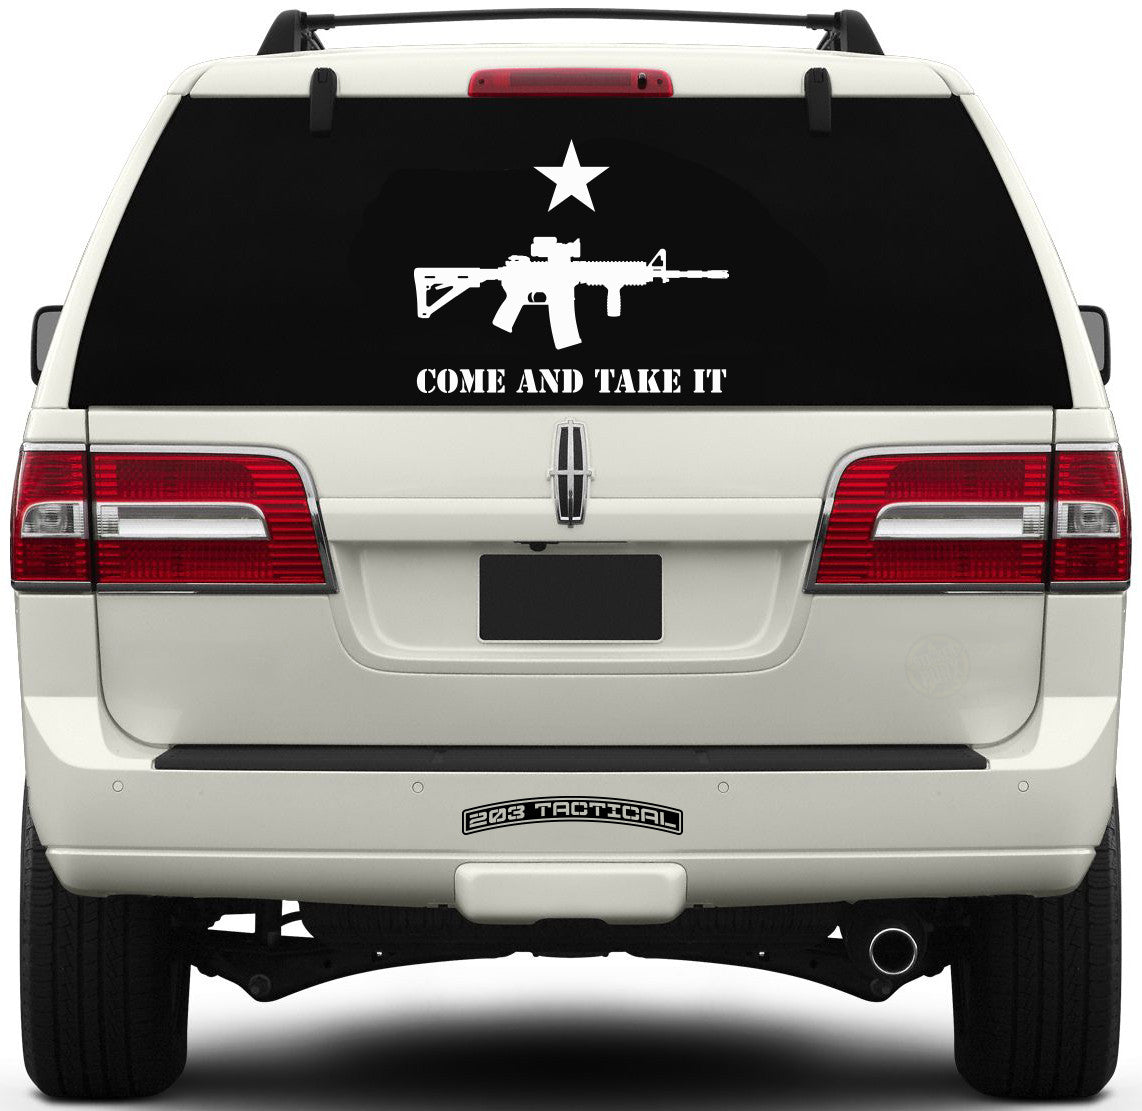 Come and Take It Window Decal - AR-15 & Lone Star